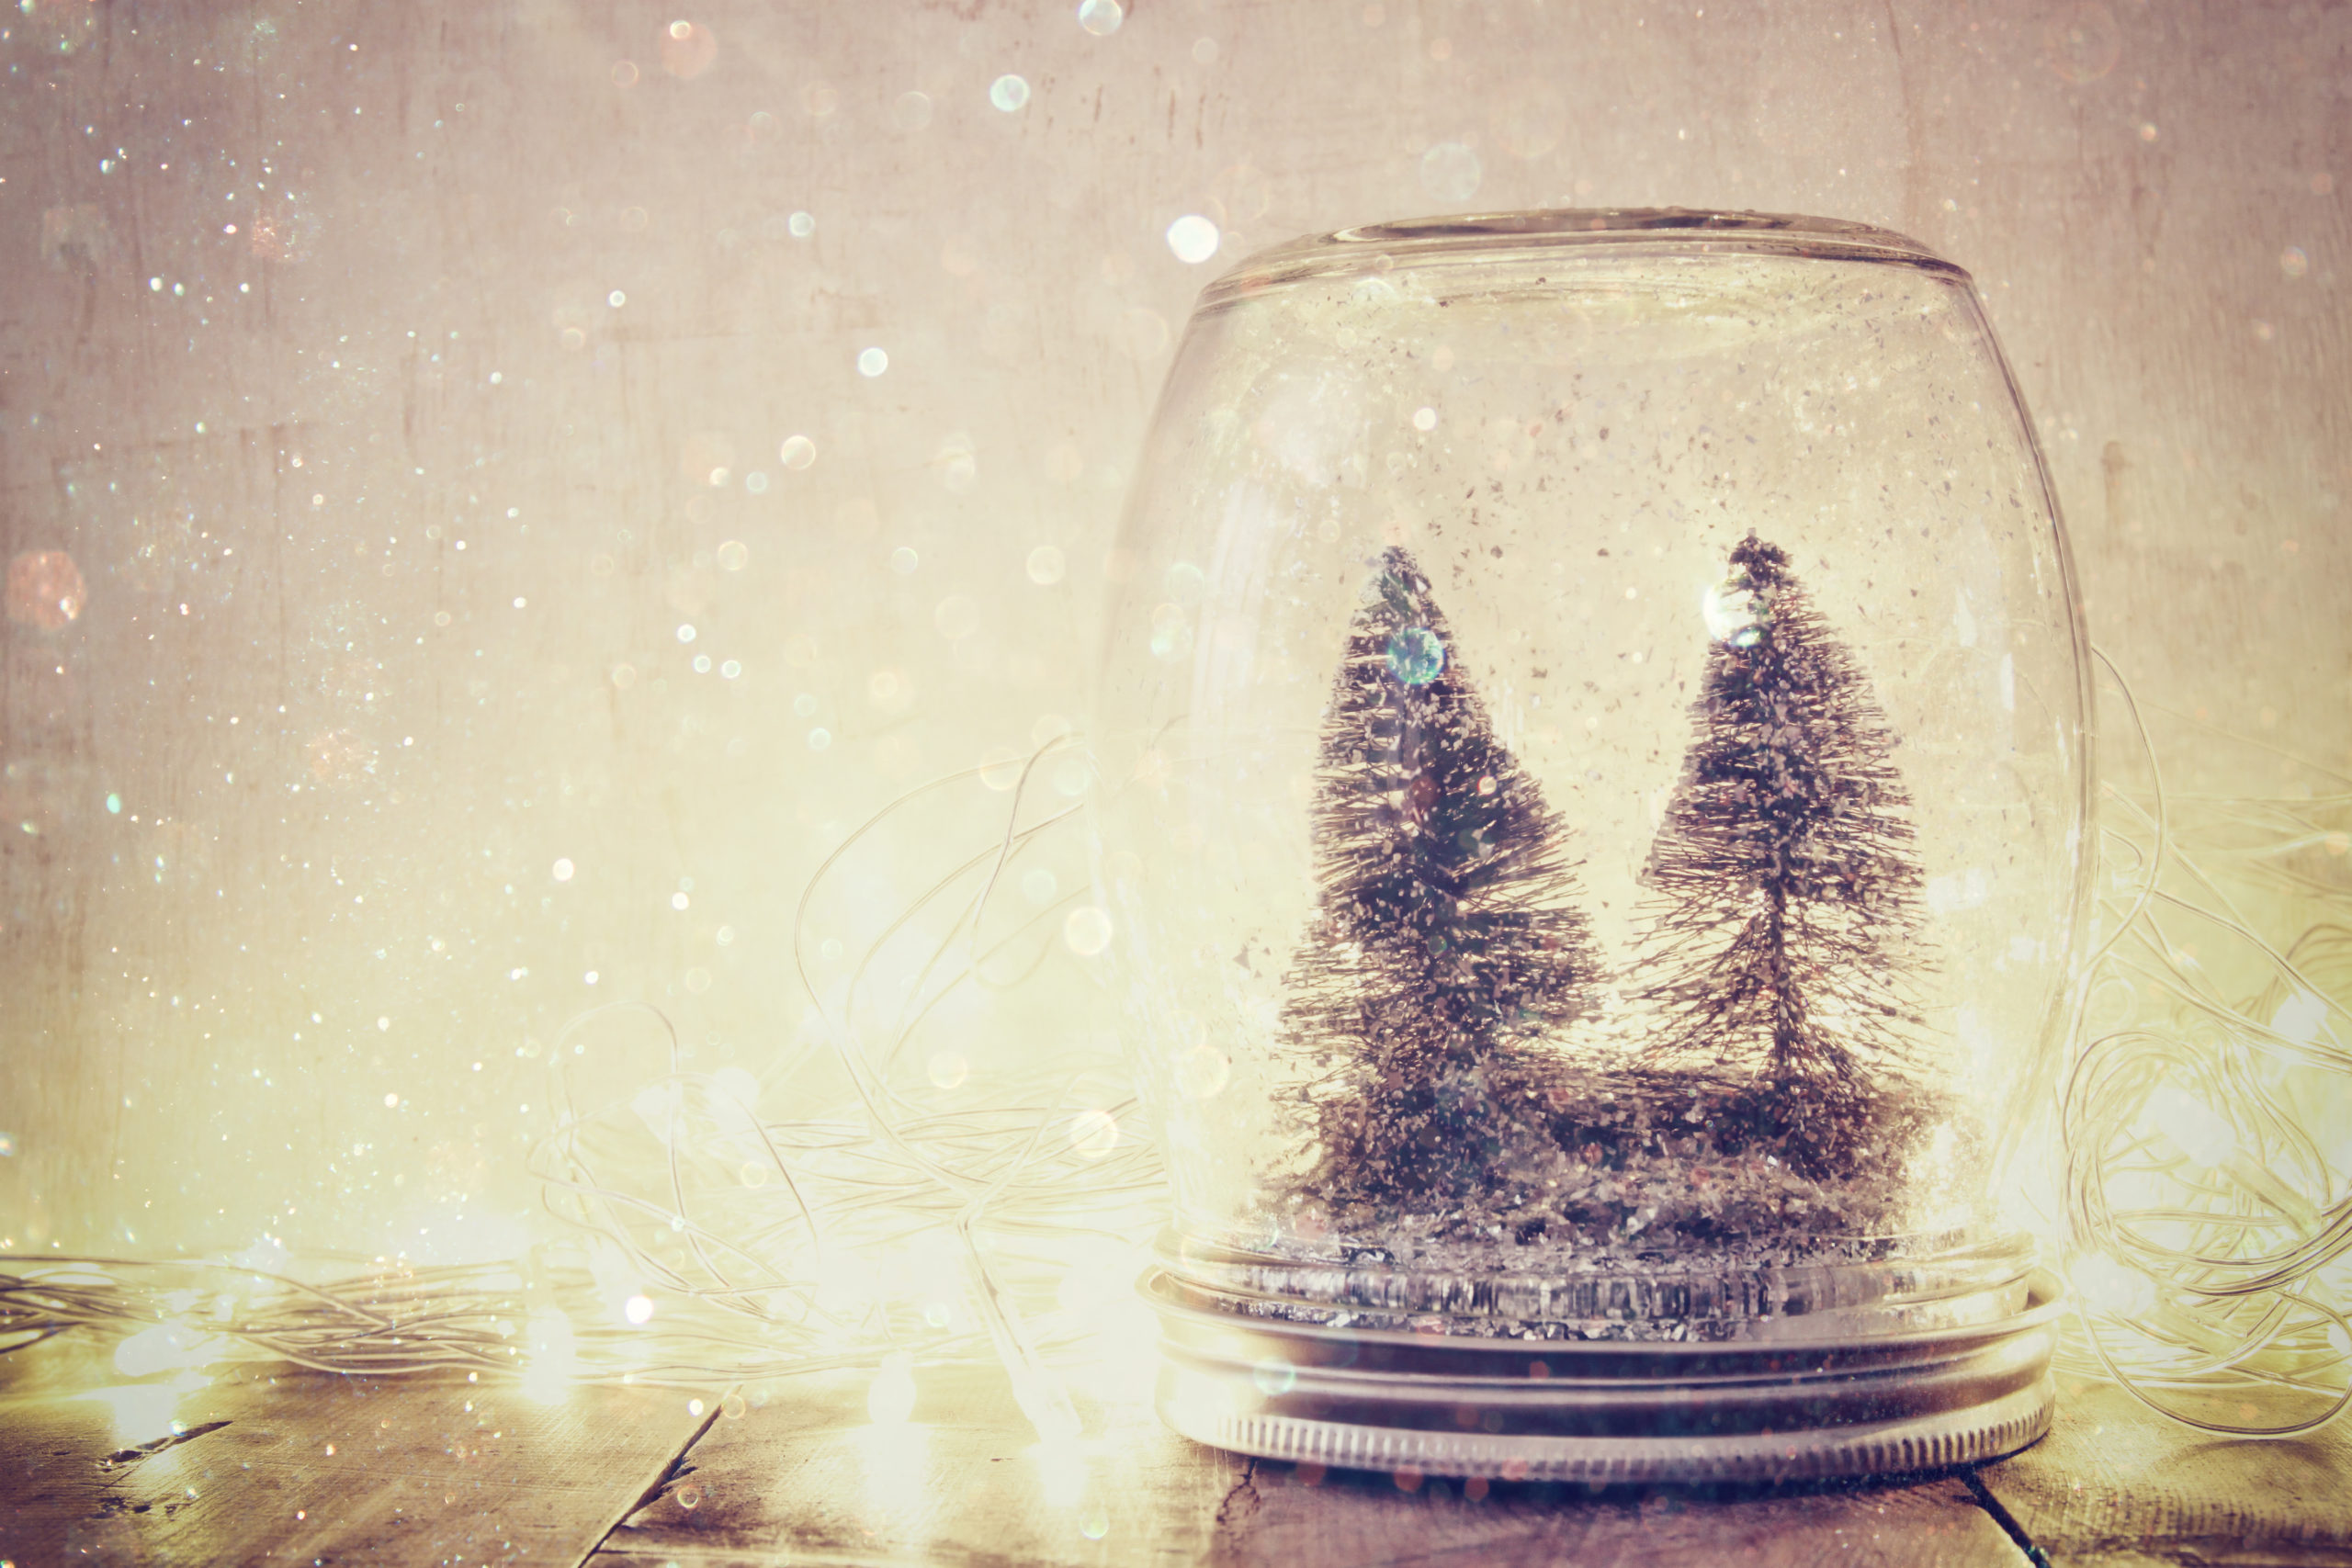 6 ways pre-lit Christmas trees make Christmas easier